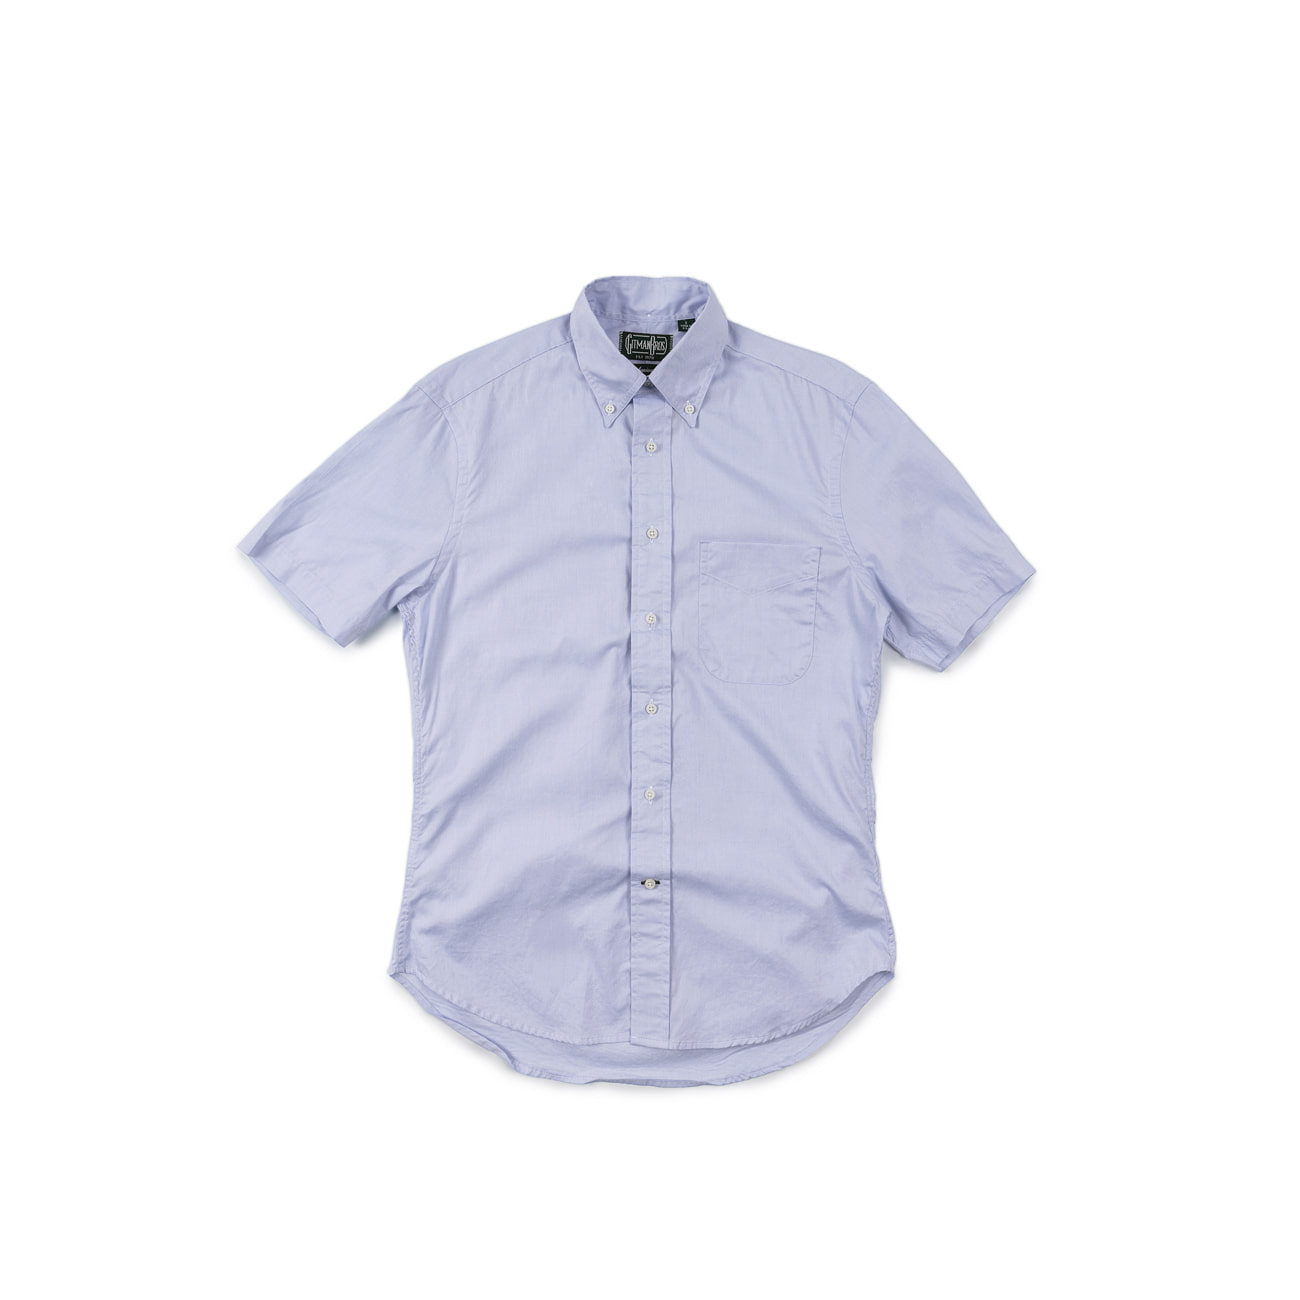 Zephyr Oxford Shirt